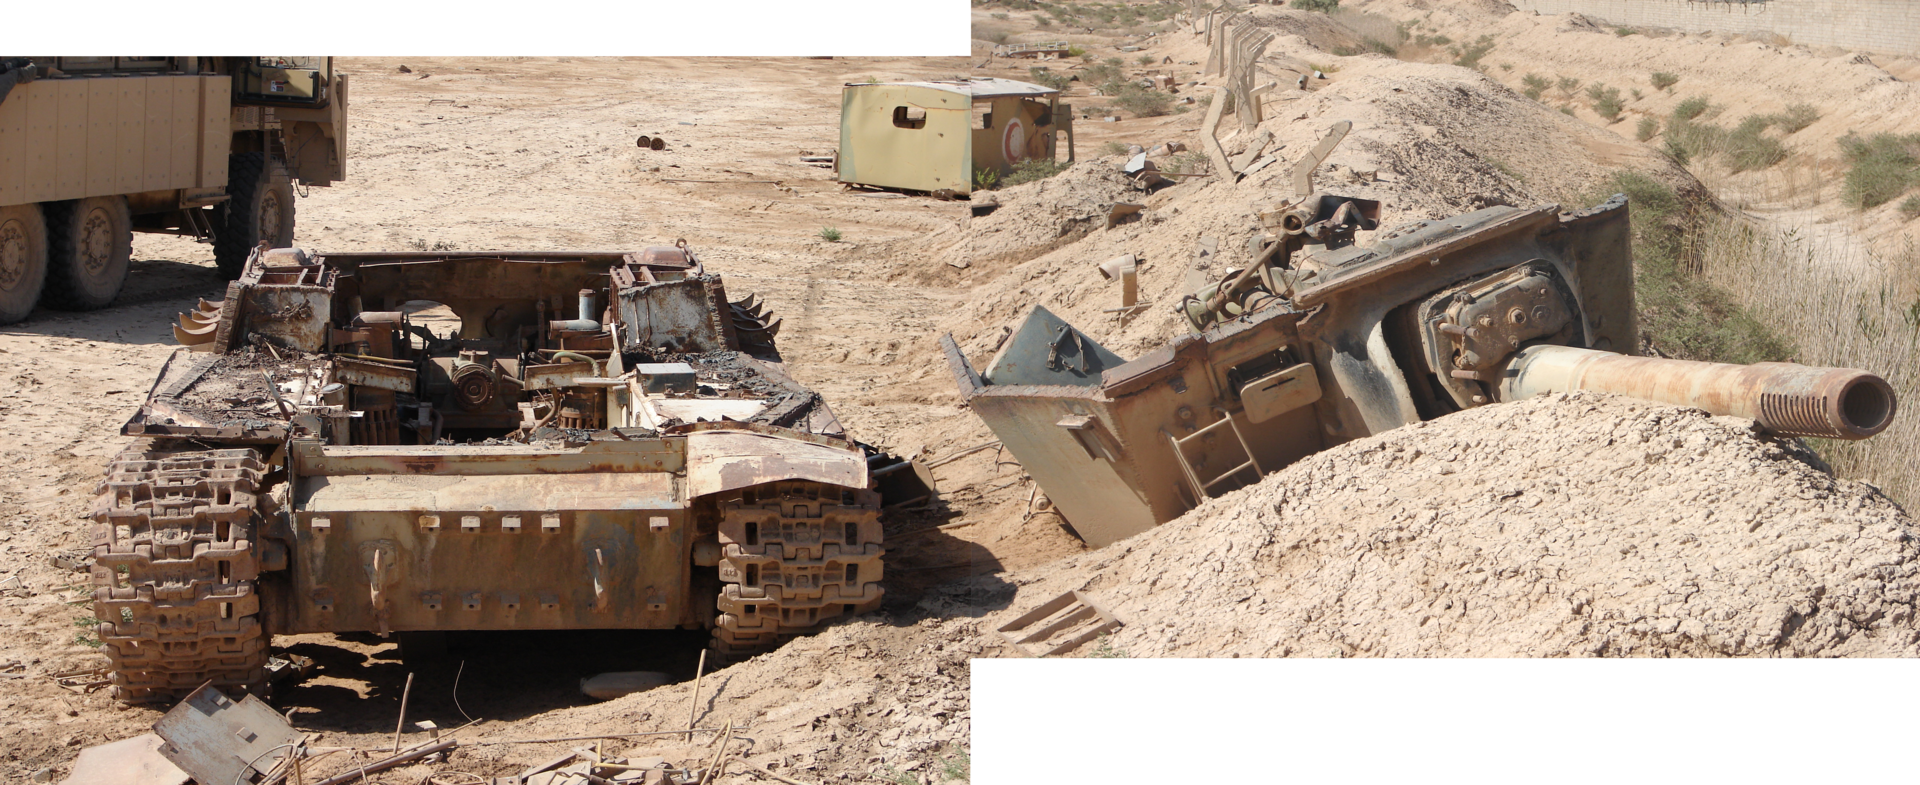 This Iraqi ISU-152 was knocked out near Camp Fallujah by a coalition airstrike. The fighting compartment was blown off!